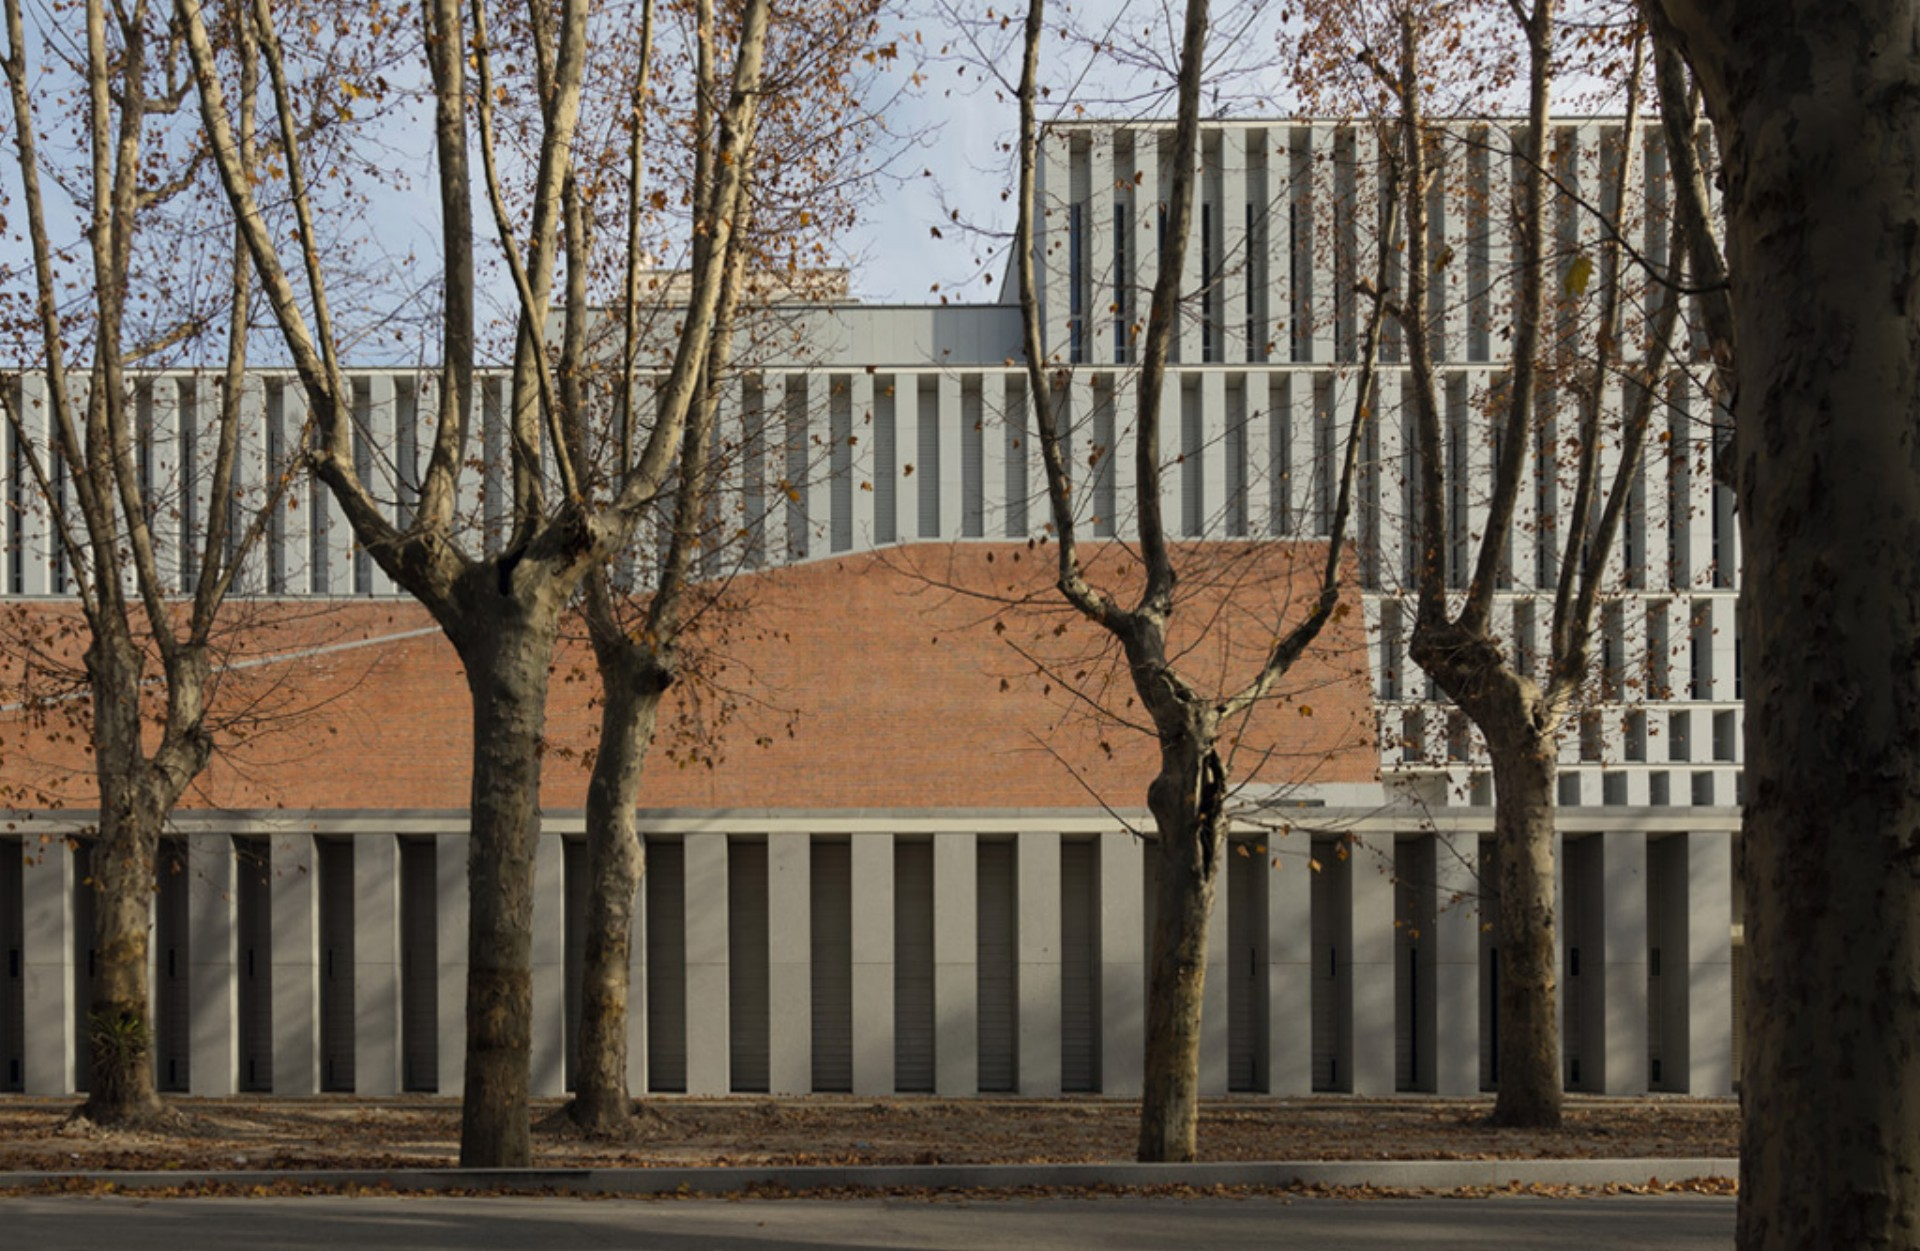 Les lauréats du BigMat 17 International Architecture Award